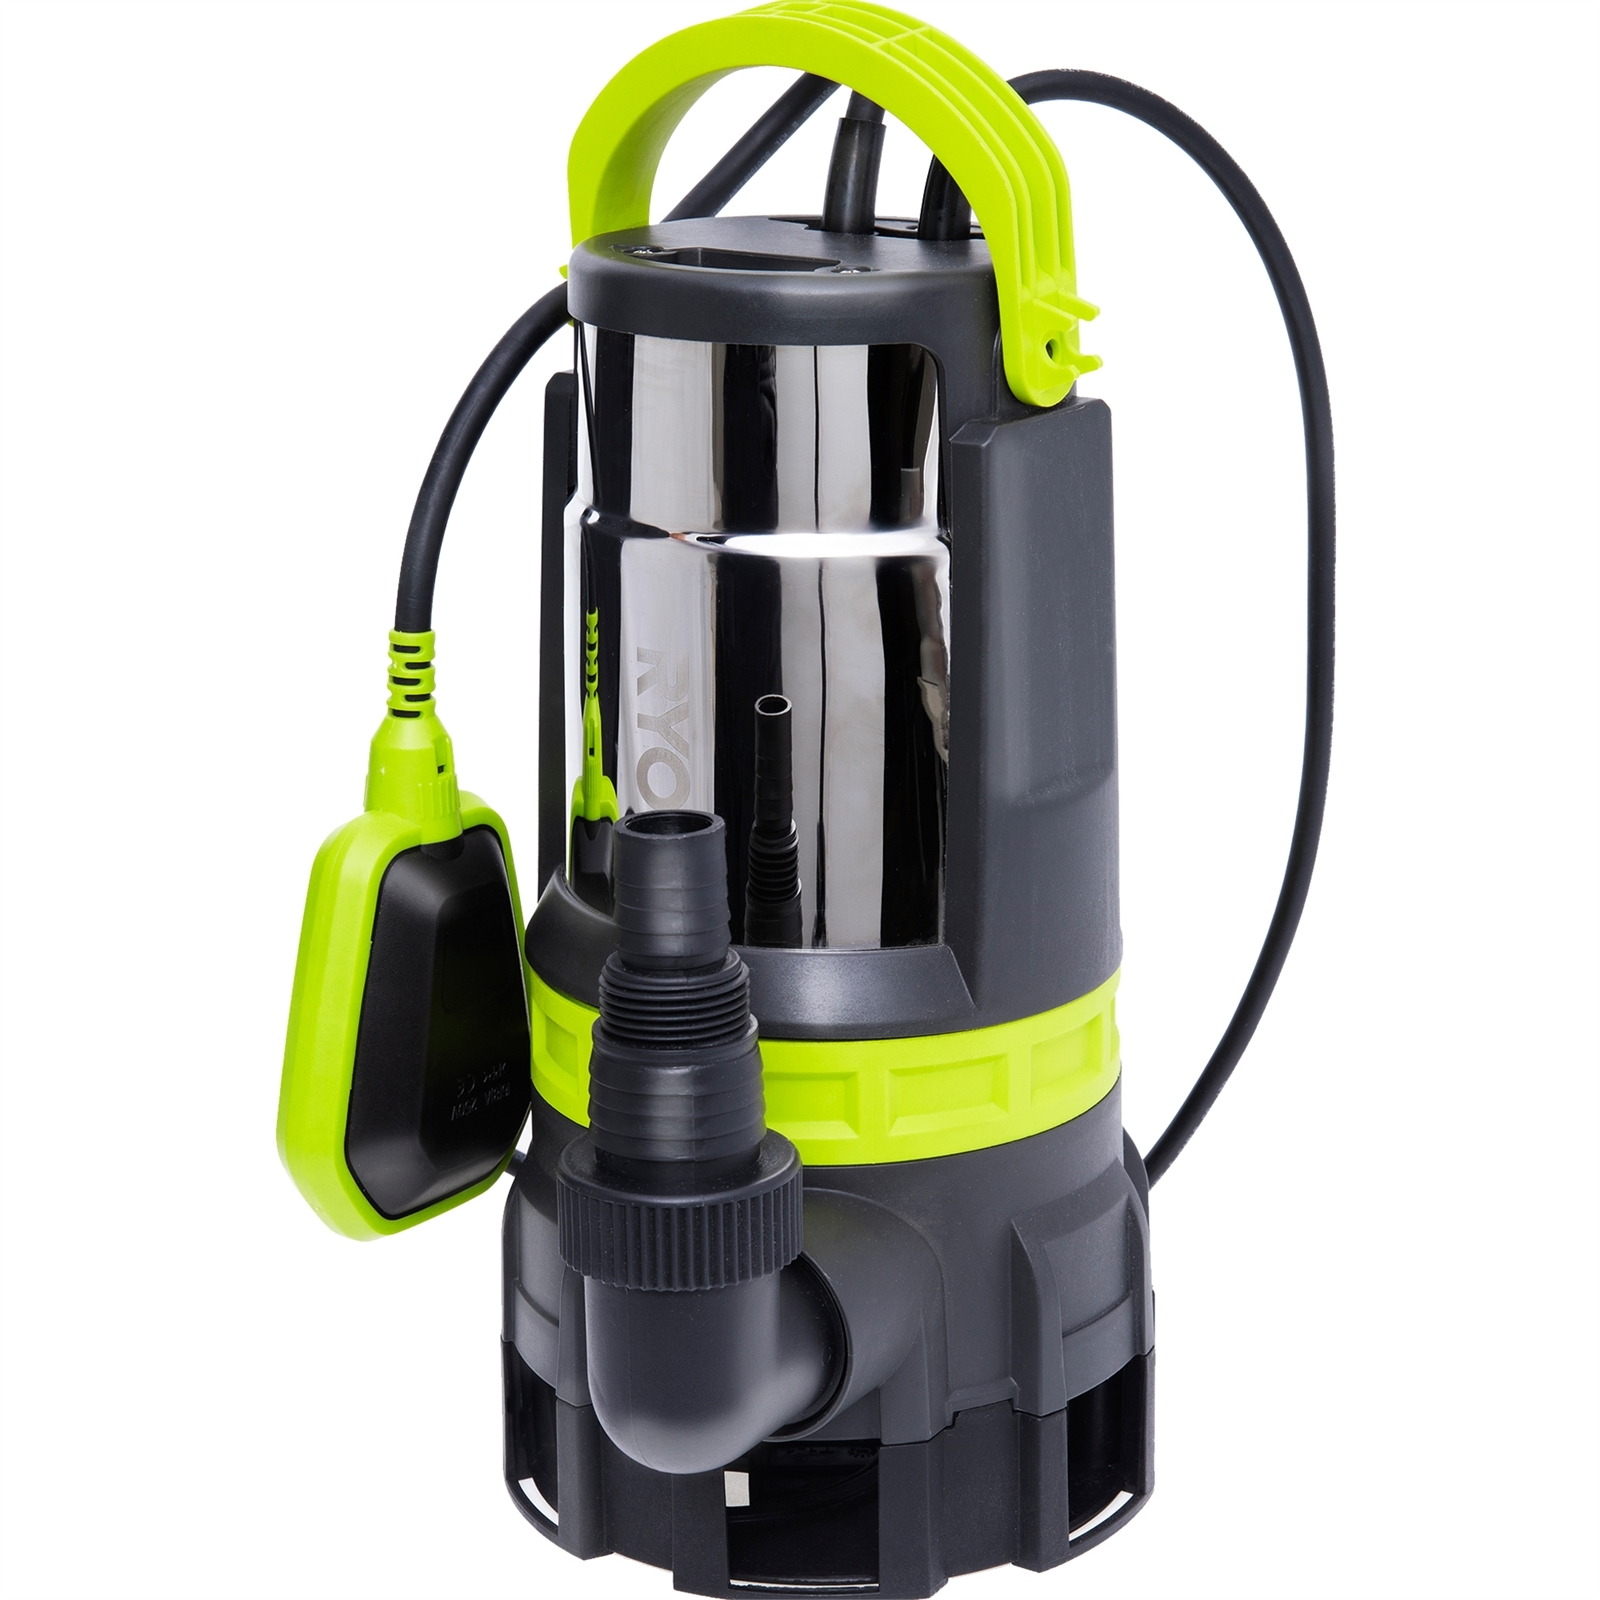 Ryobi 750W Clean and Dirty Water Submersible Pump